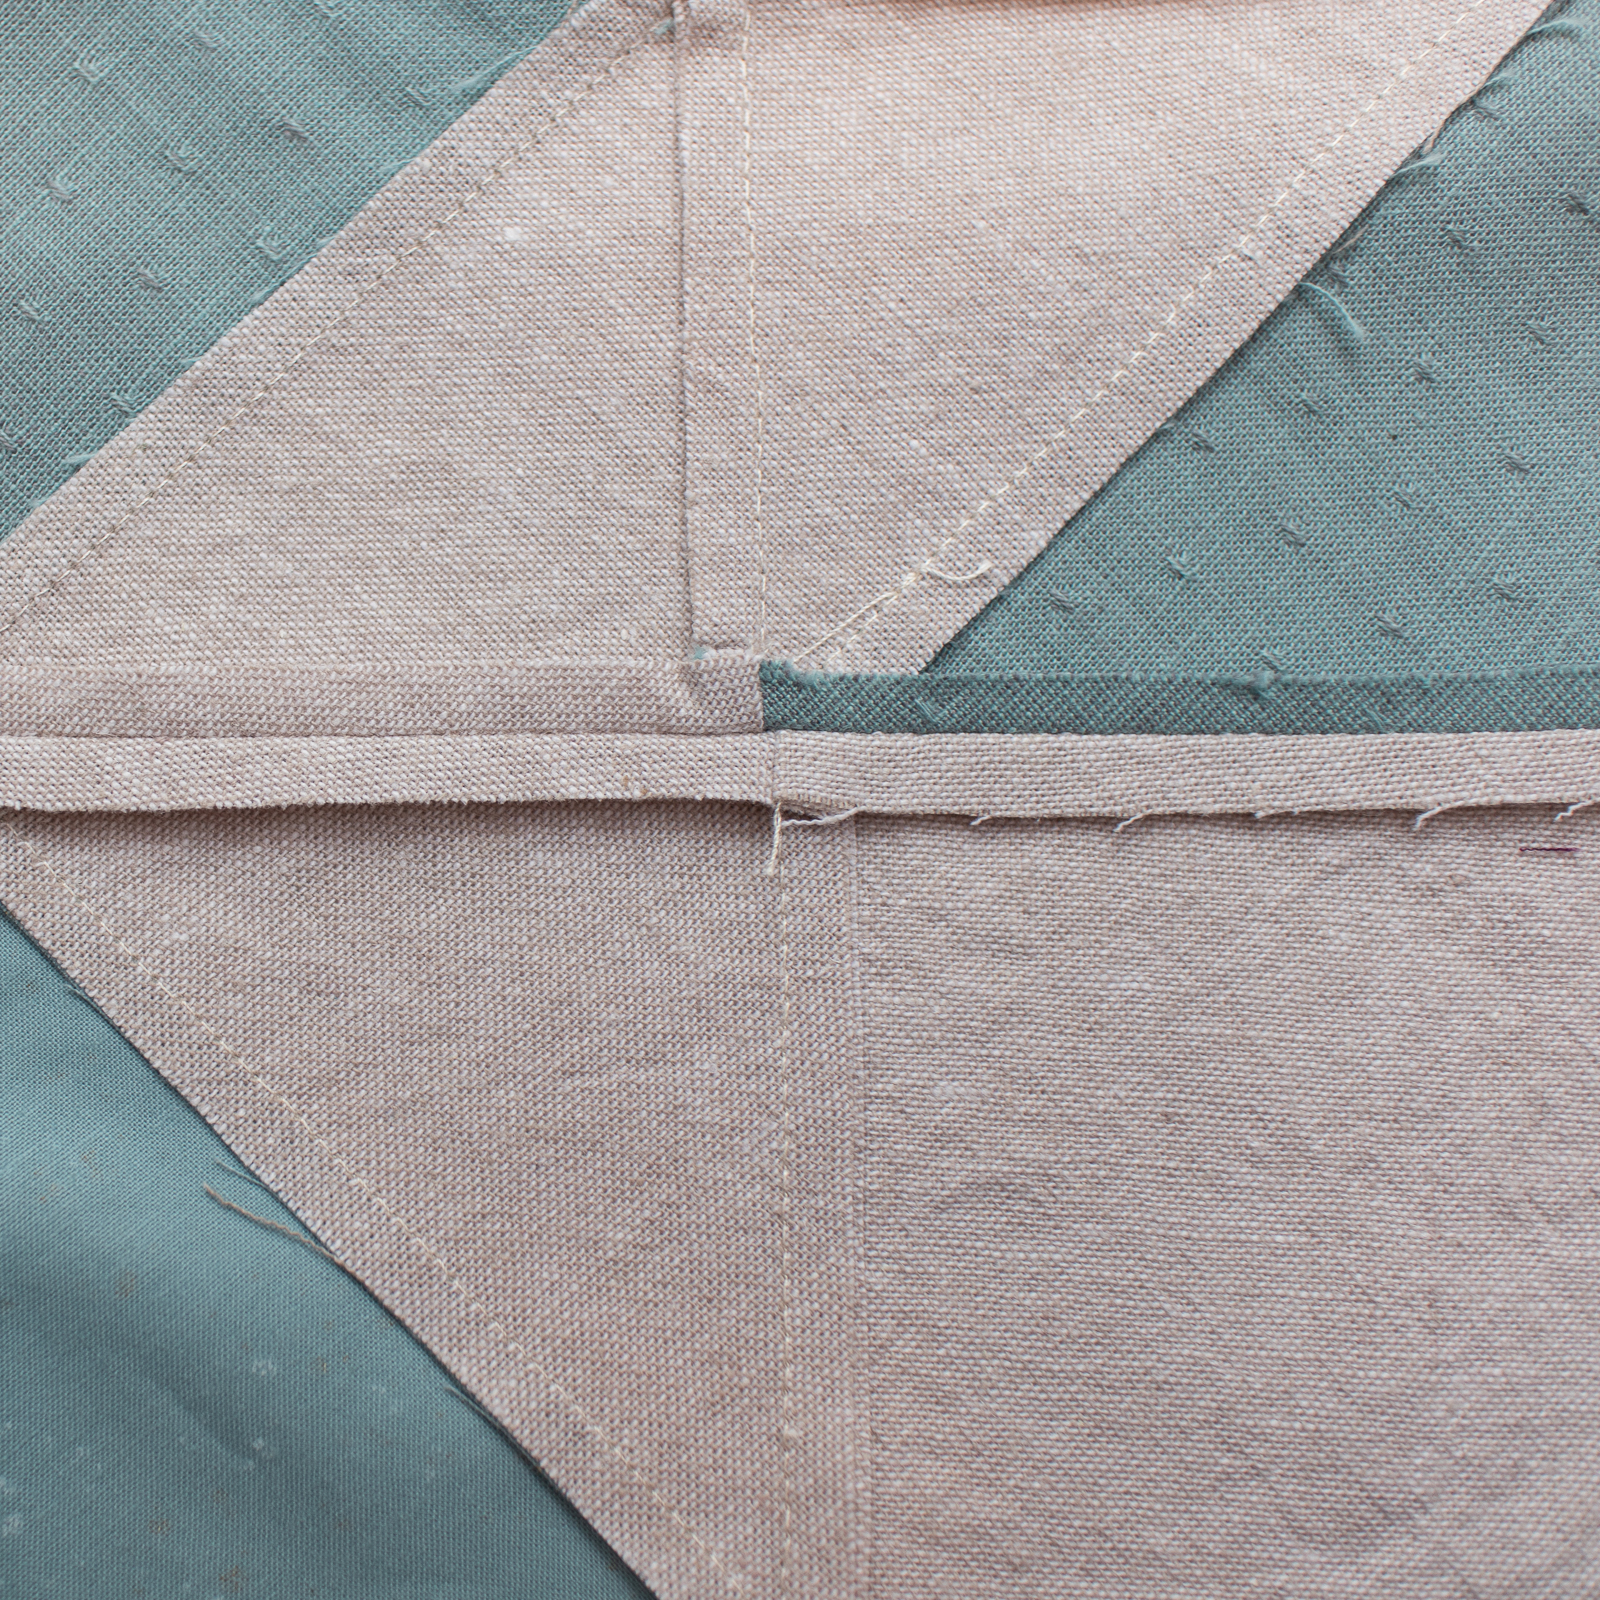 The Voyage quilt sew along is a community experience! Let's make this modern quilt together - one week at a time. suzyquilts.com #quiltalong #quiltpattern